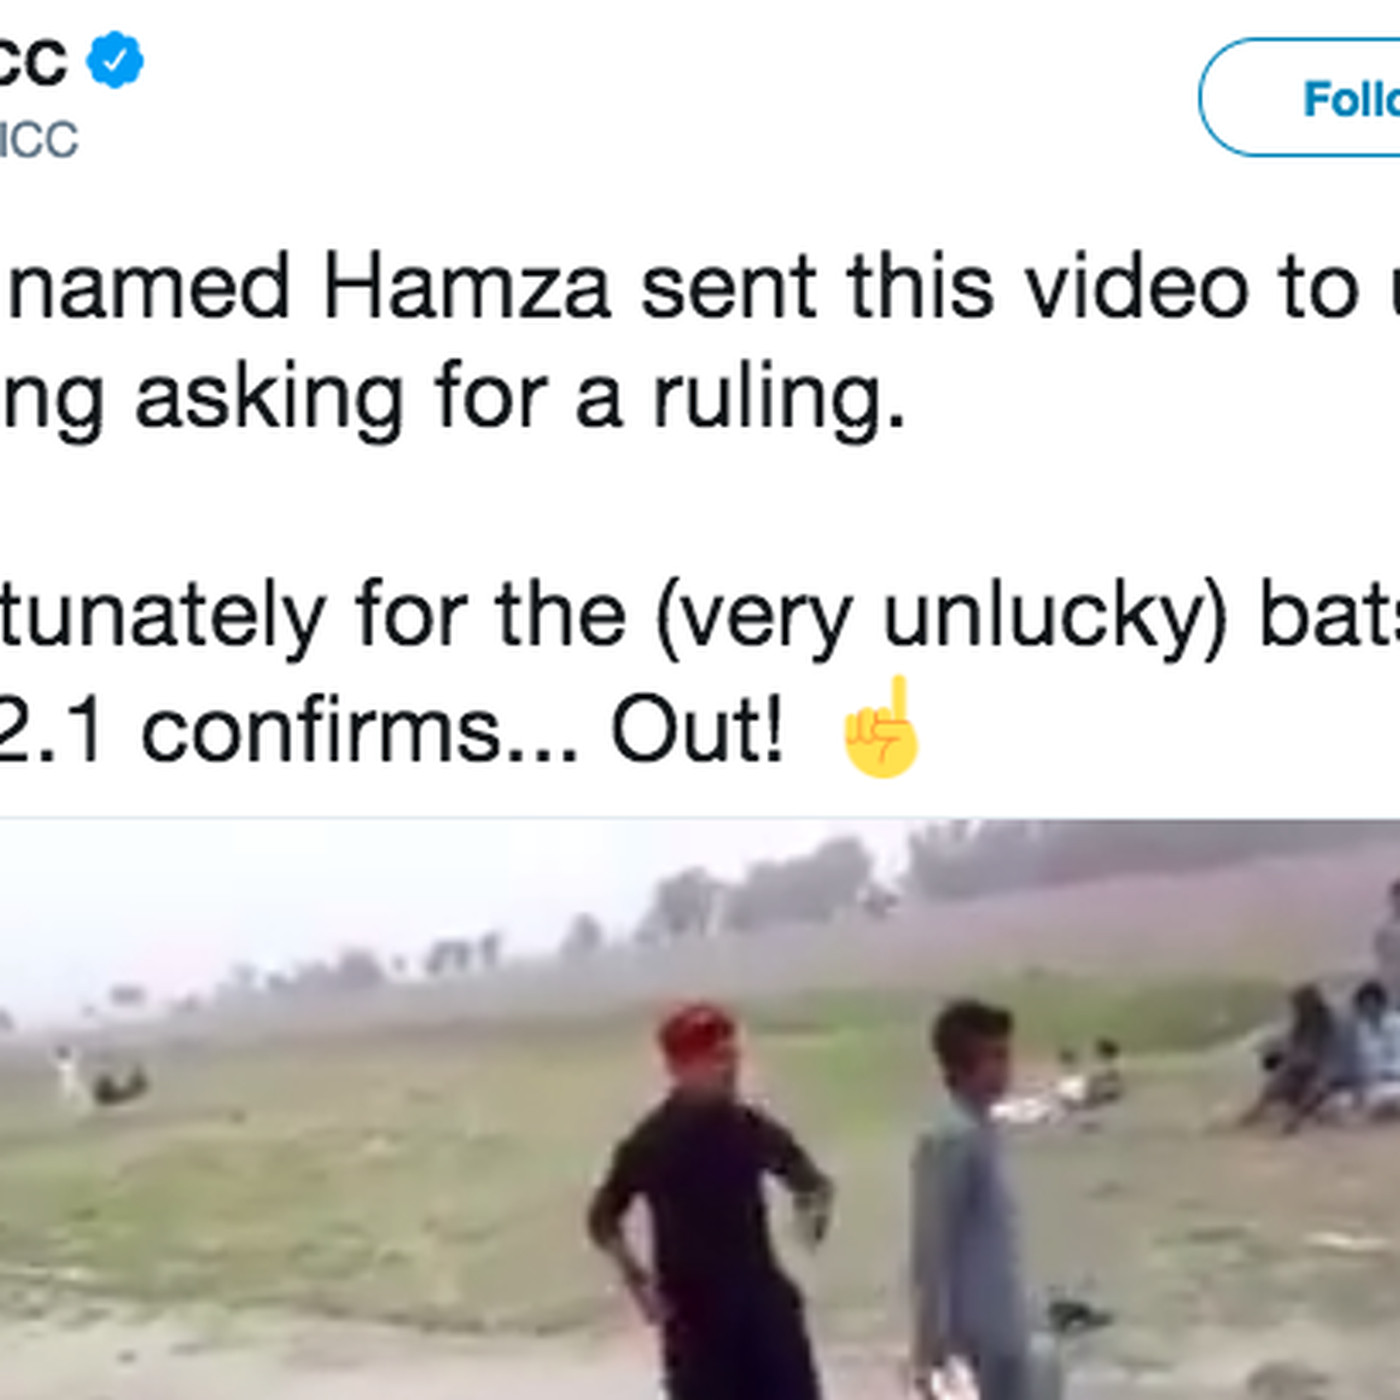 Cricket's governing body will answer your friends' rules